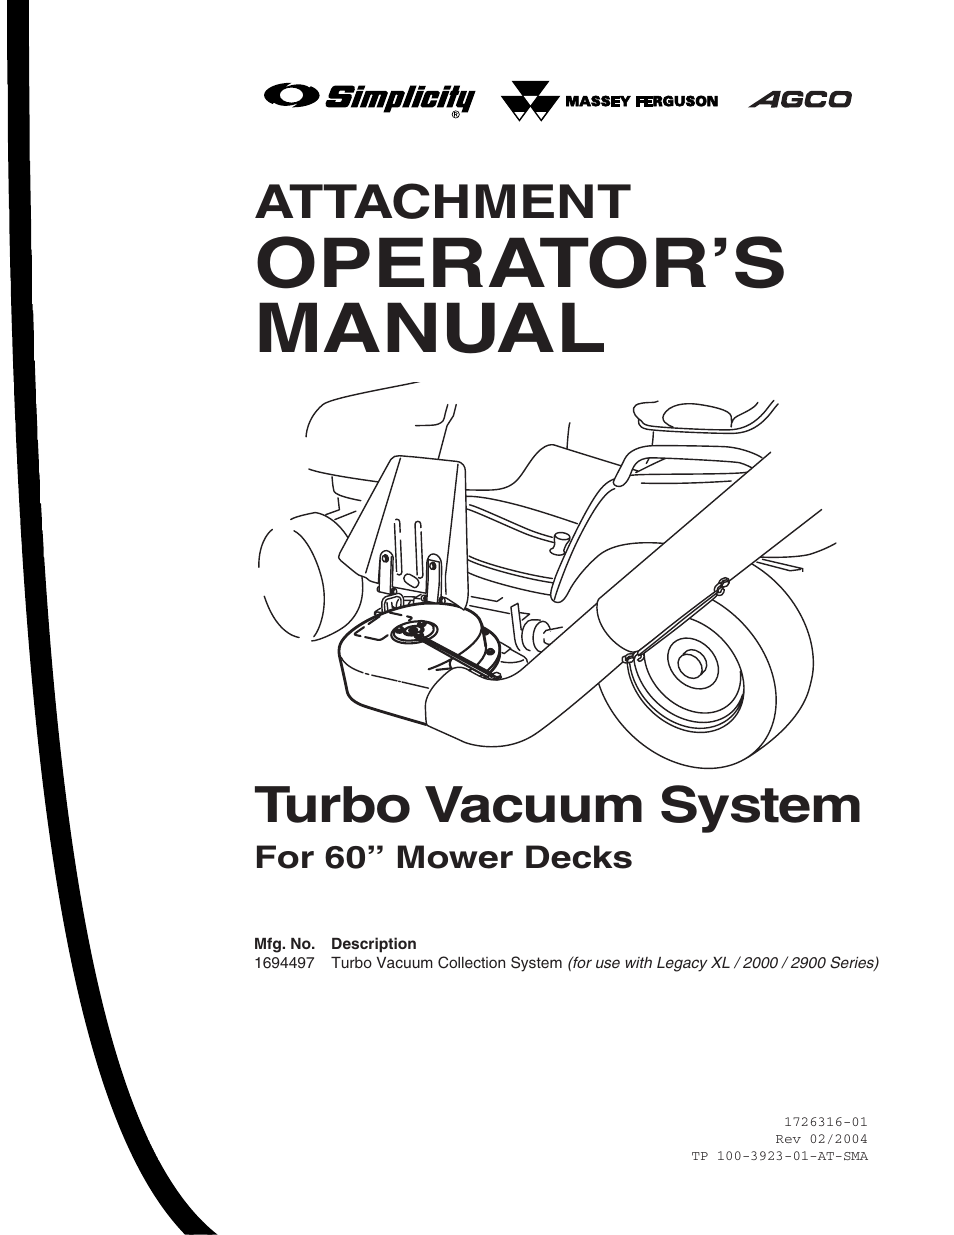 simplicity turbo vacuum collection system user manual 12 pages rh manualsdir com Simplicity Legacy XL Craigslist Simplicity Legacy XL Attachments